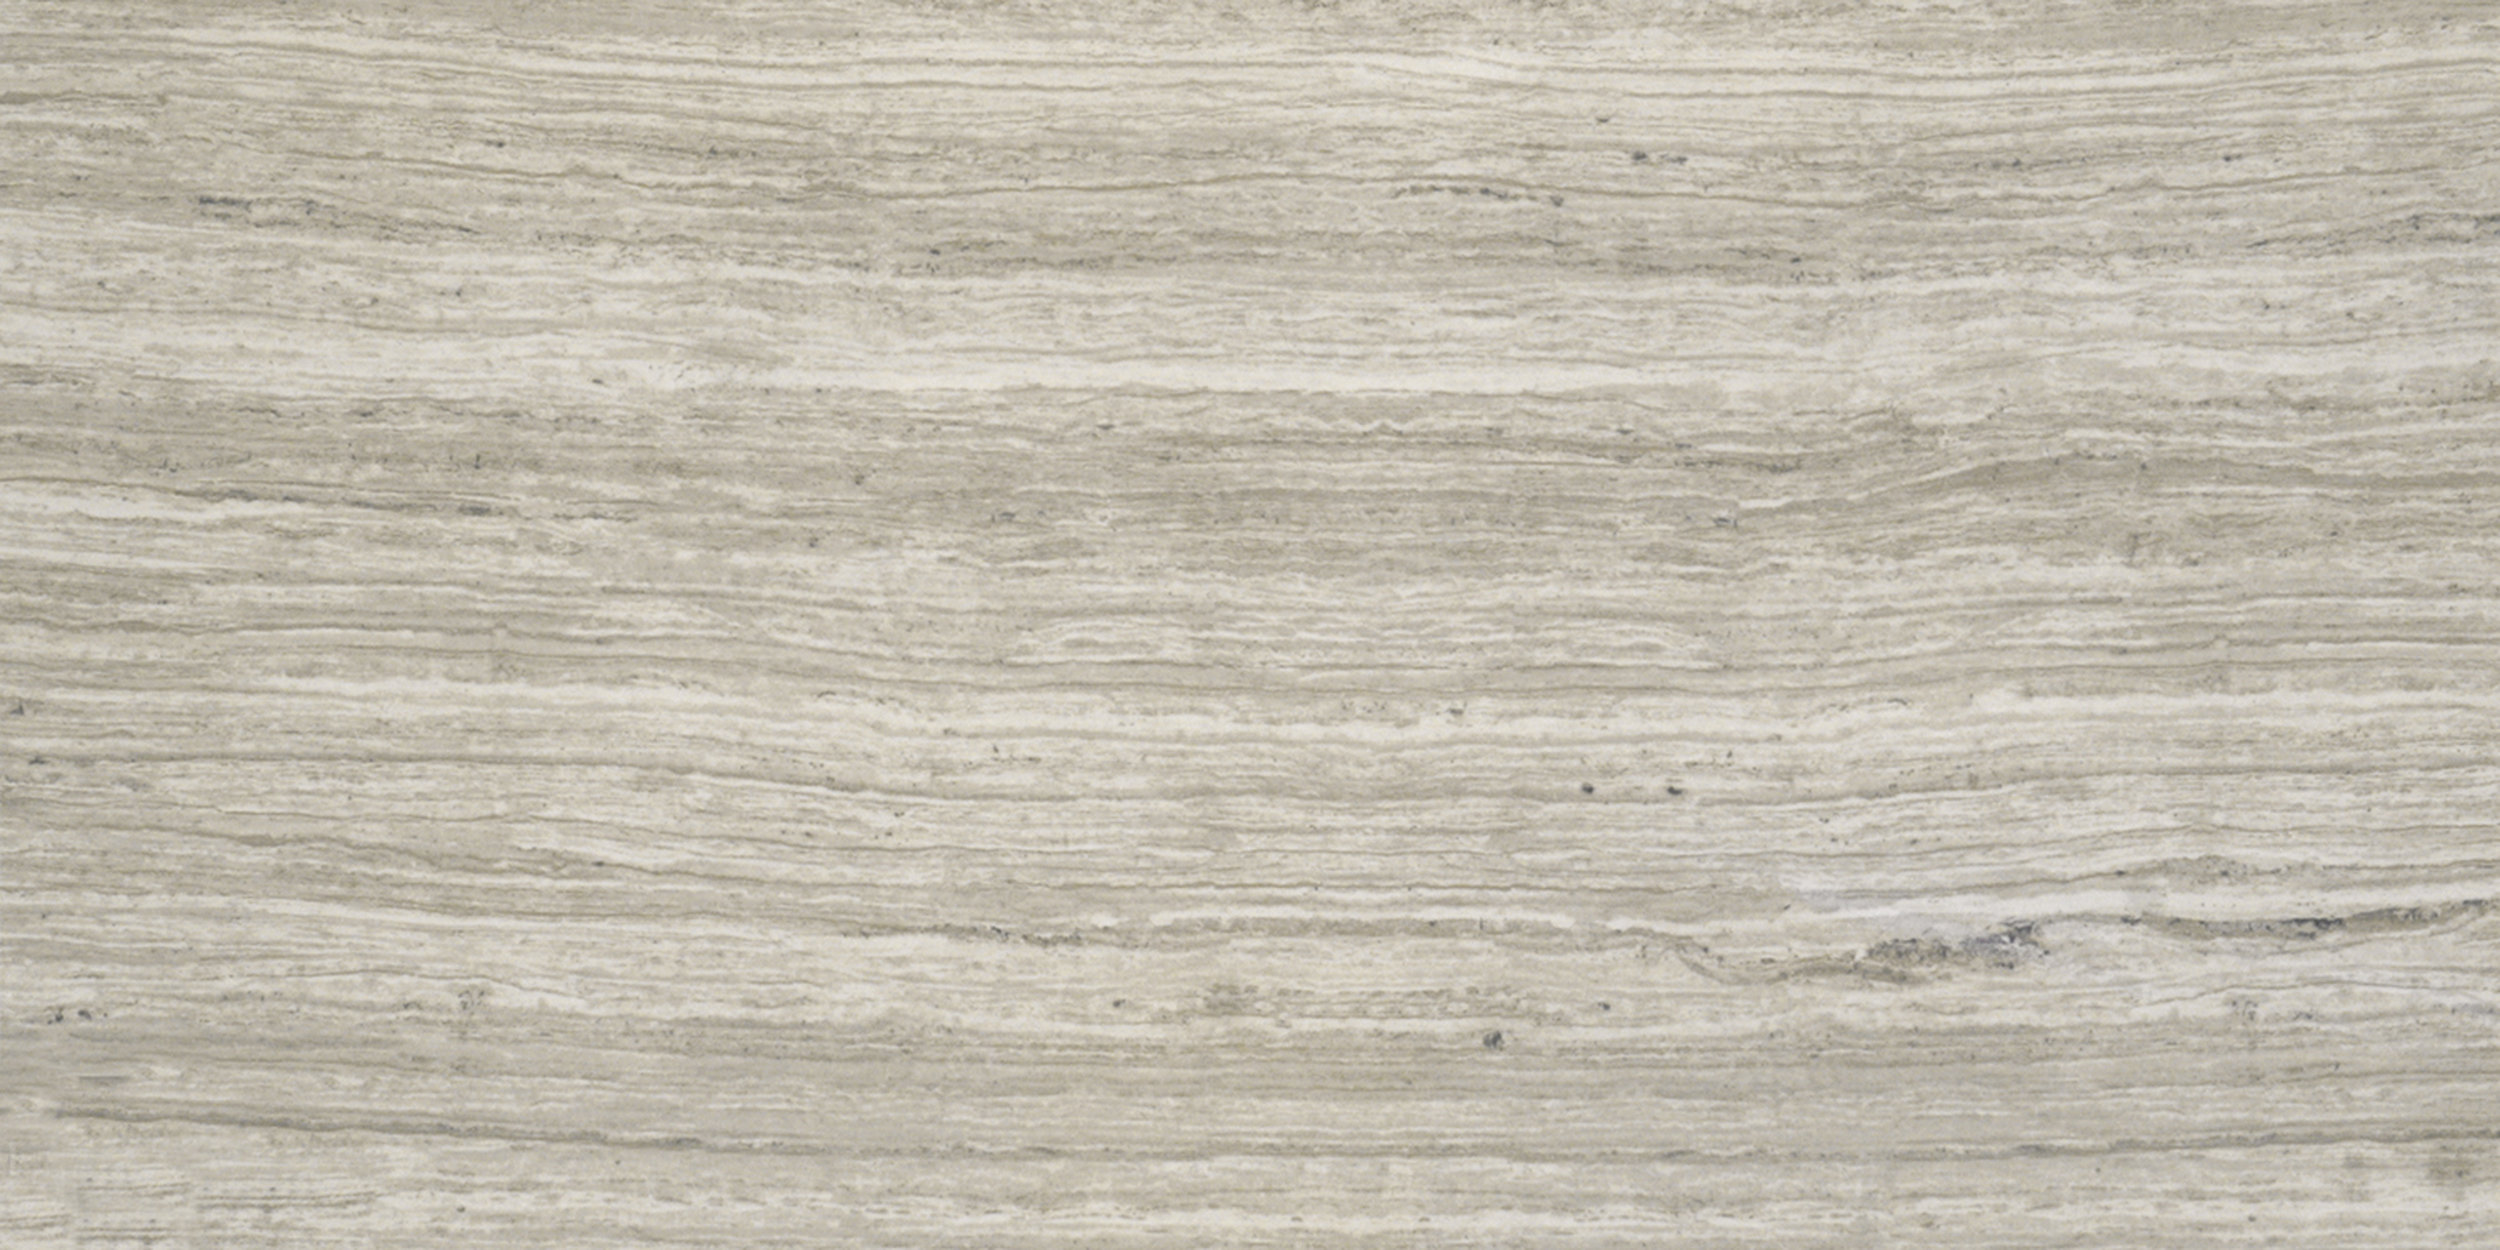 Travertine Silver  Polished | OV.ET.TRS.1224  Matte | OV.ET.TRS.1224.MT